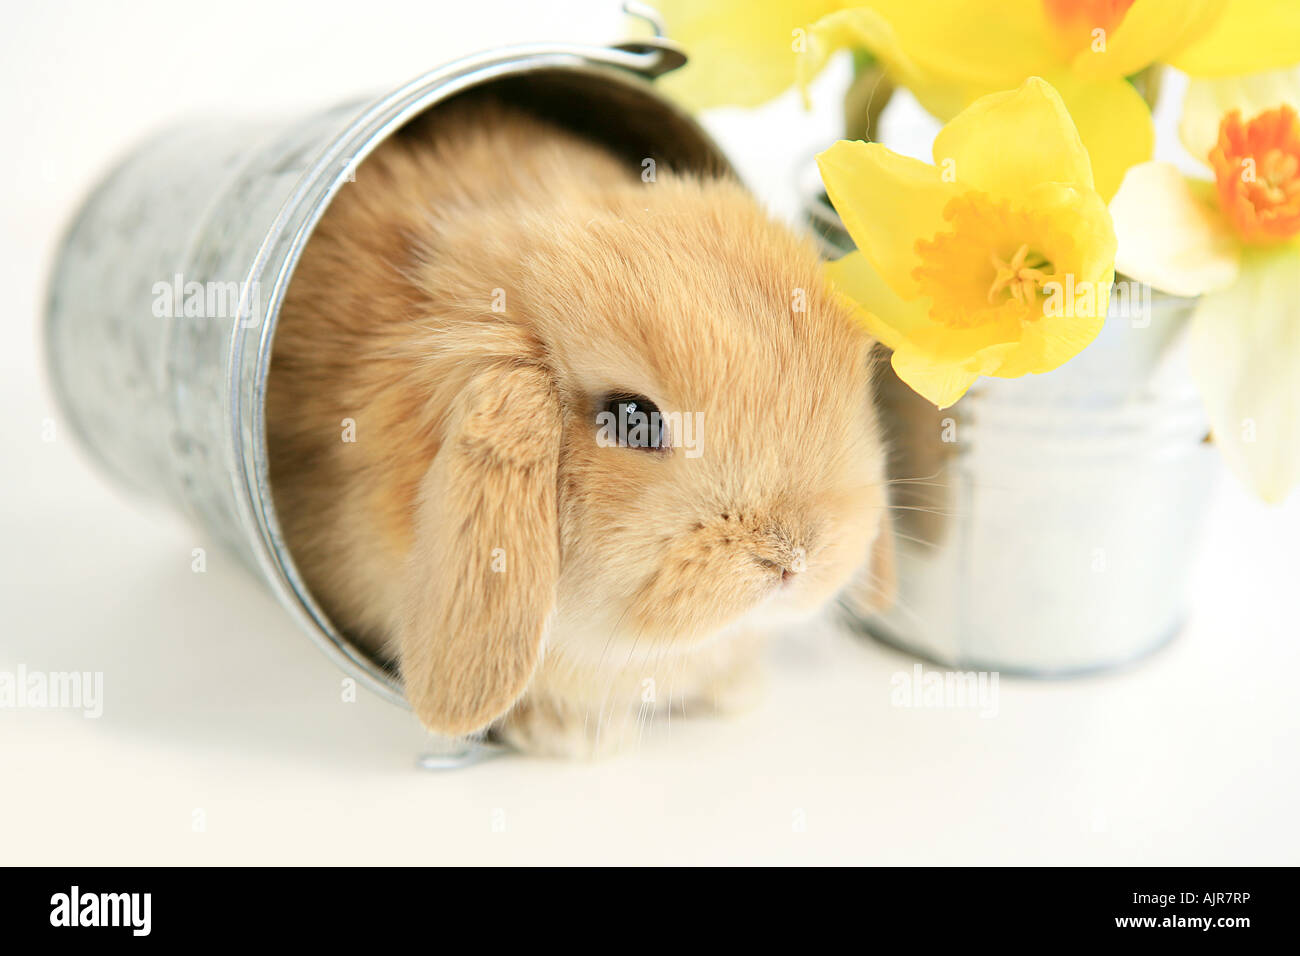 Baby mini lop ear bunny in silver galvanized bucket with yellow daffodil flowers isolated on white background - Stock Image